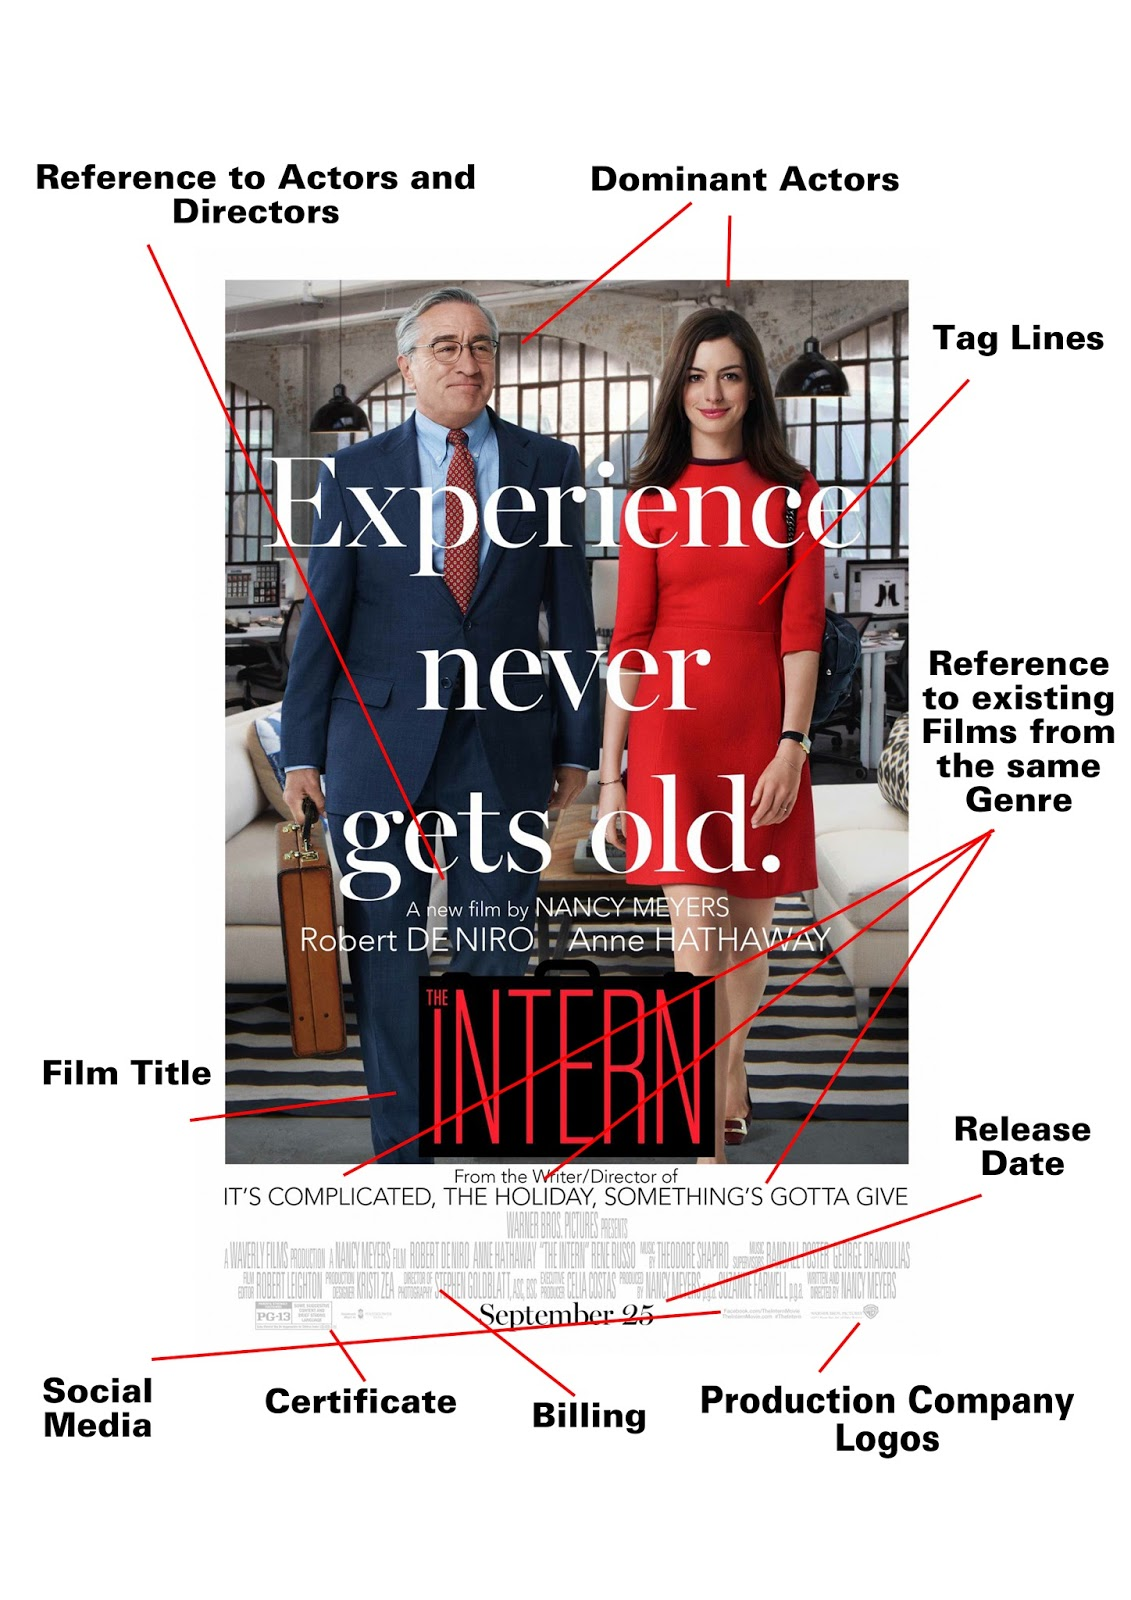 The Intern 2015 Poster